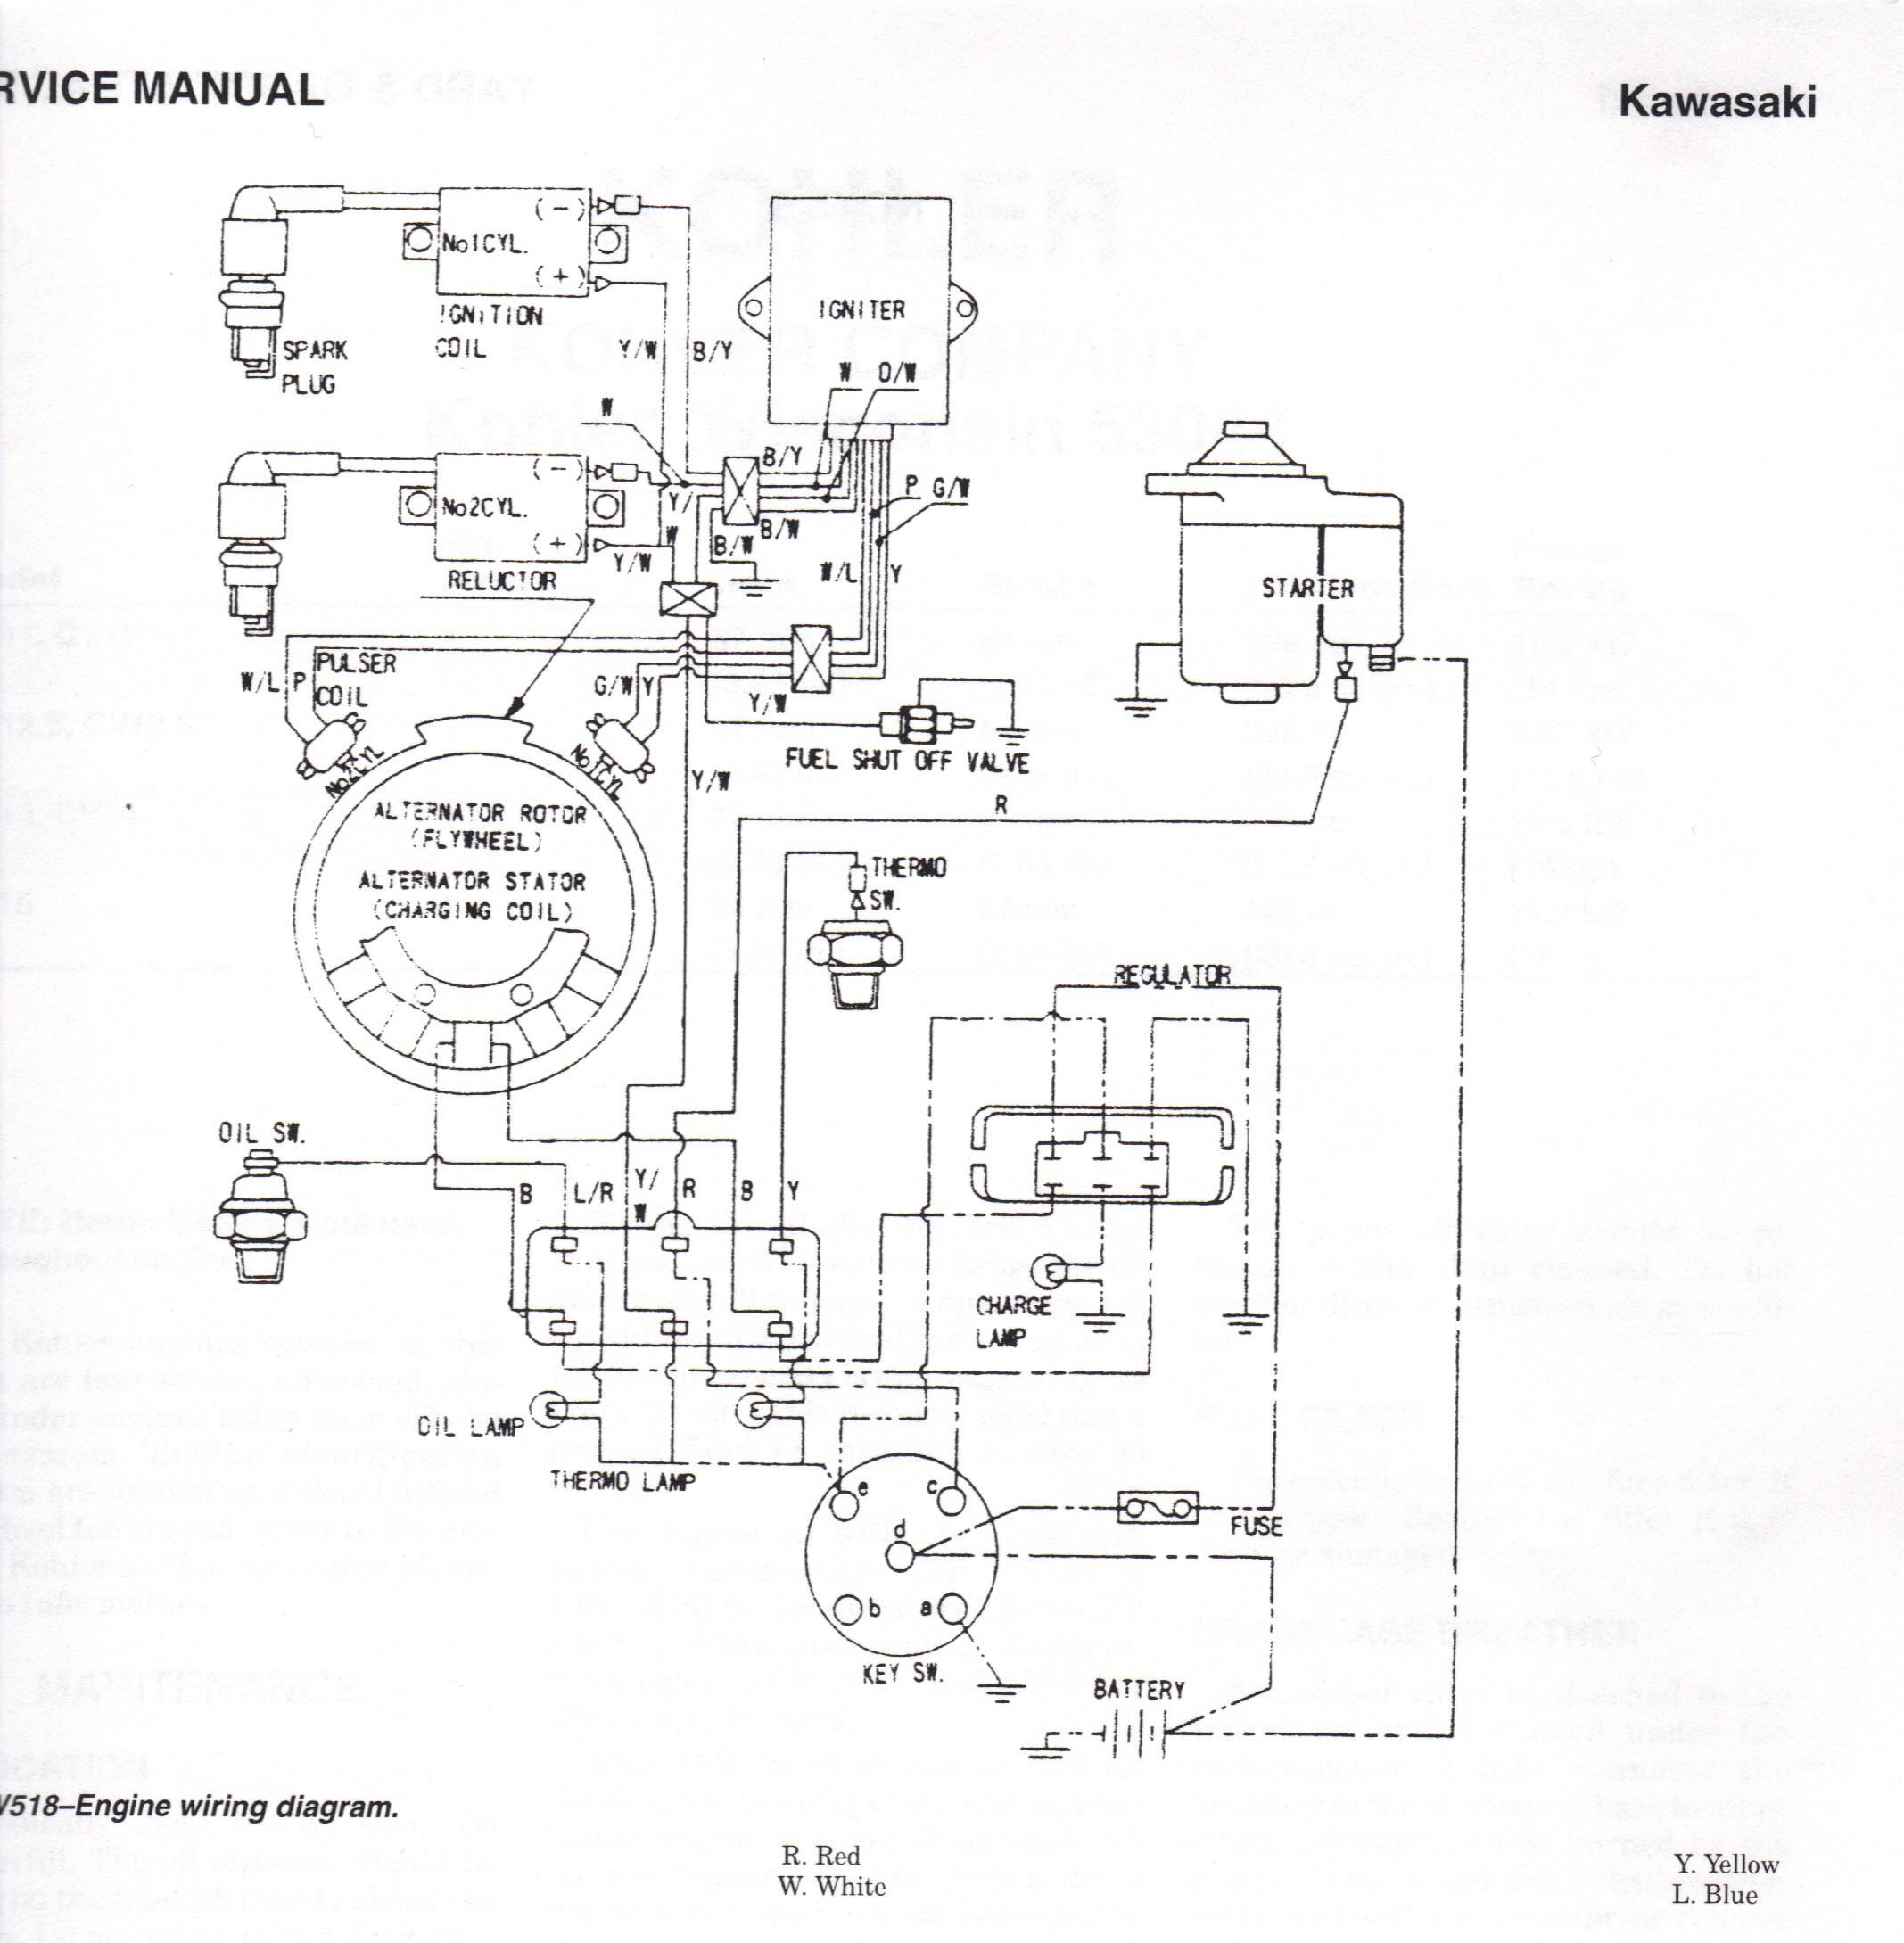 c3c29ccfe896050962b53256cc959e85 wiring diagrams for 757 john deere 25 hp kawasaki diagram